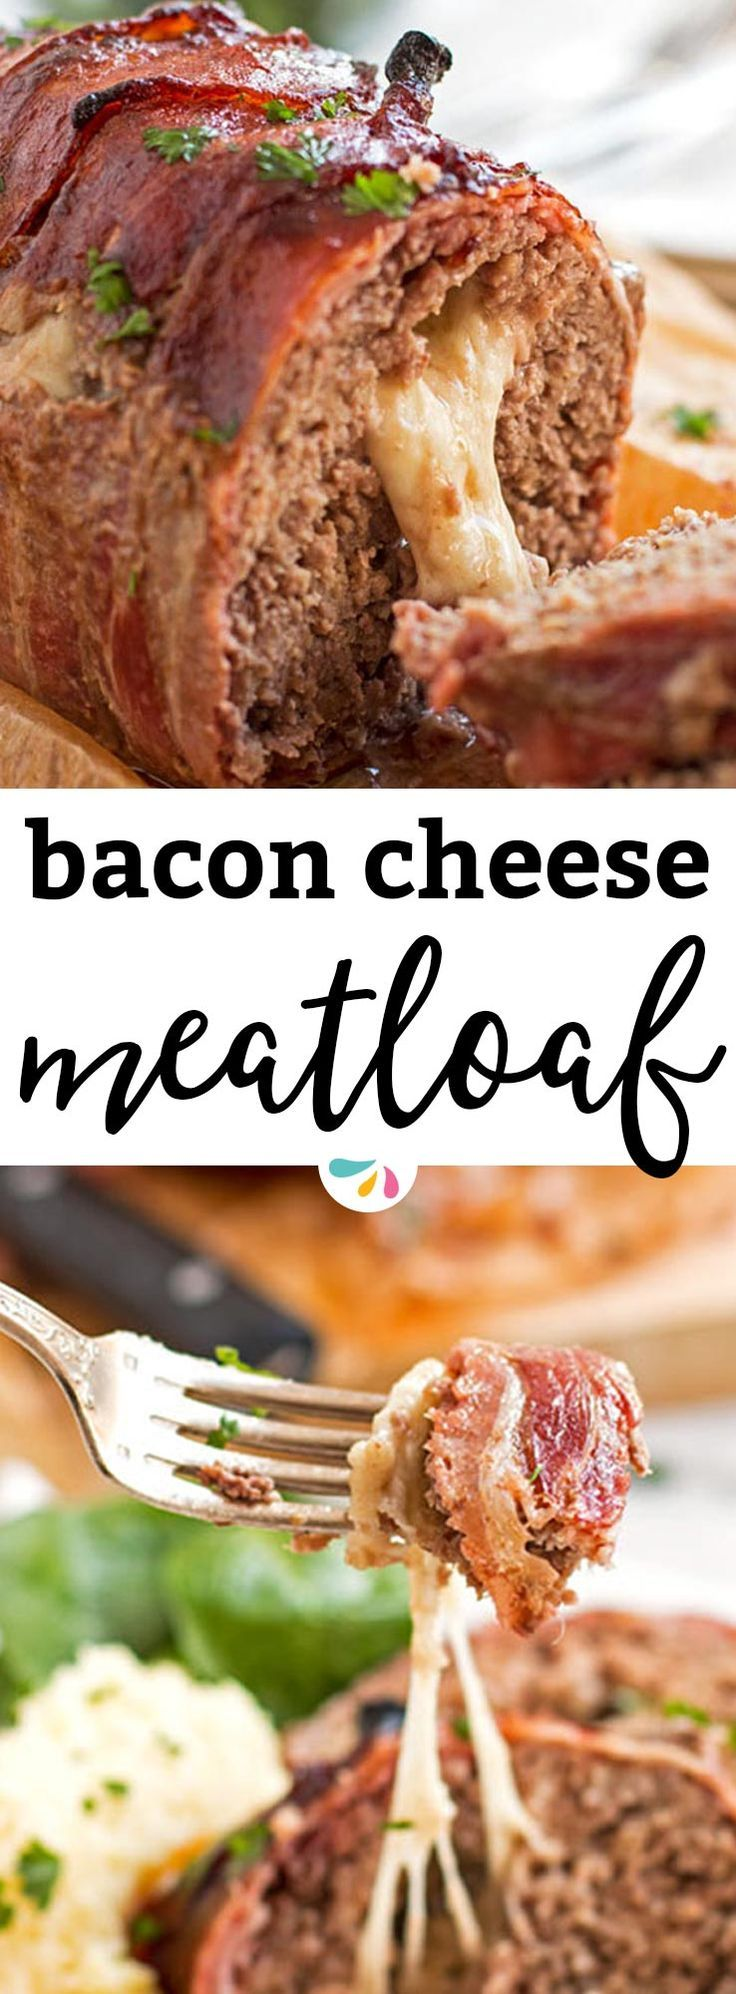 This homemade Mozzarella Stuffed Bacon Wrapped Meatloaf is stuffed with melty cheese and wrapped in plenty of bacon for an easy comforting family dinner. The recipe is cooked without ketchup and smothered in a BBQ sauce glaze instead. The classic meatloaf base is made with ground beef, eggs and with breadcrumbs. Served with your favorite sides and a simple gravy, the cheesy middle of this meatloaf is the best! Adapted from The Pioneer Woman.   #recipe #bacon #dinner #cheese